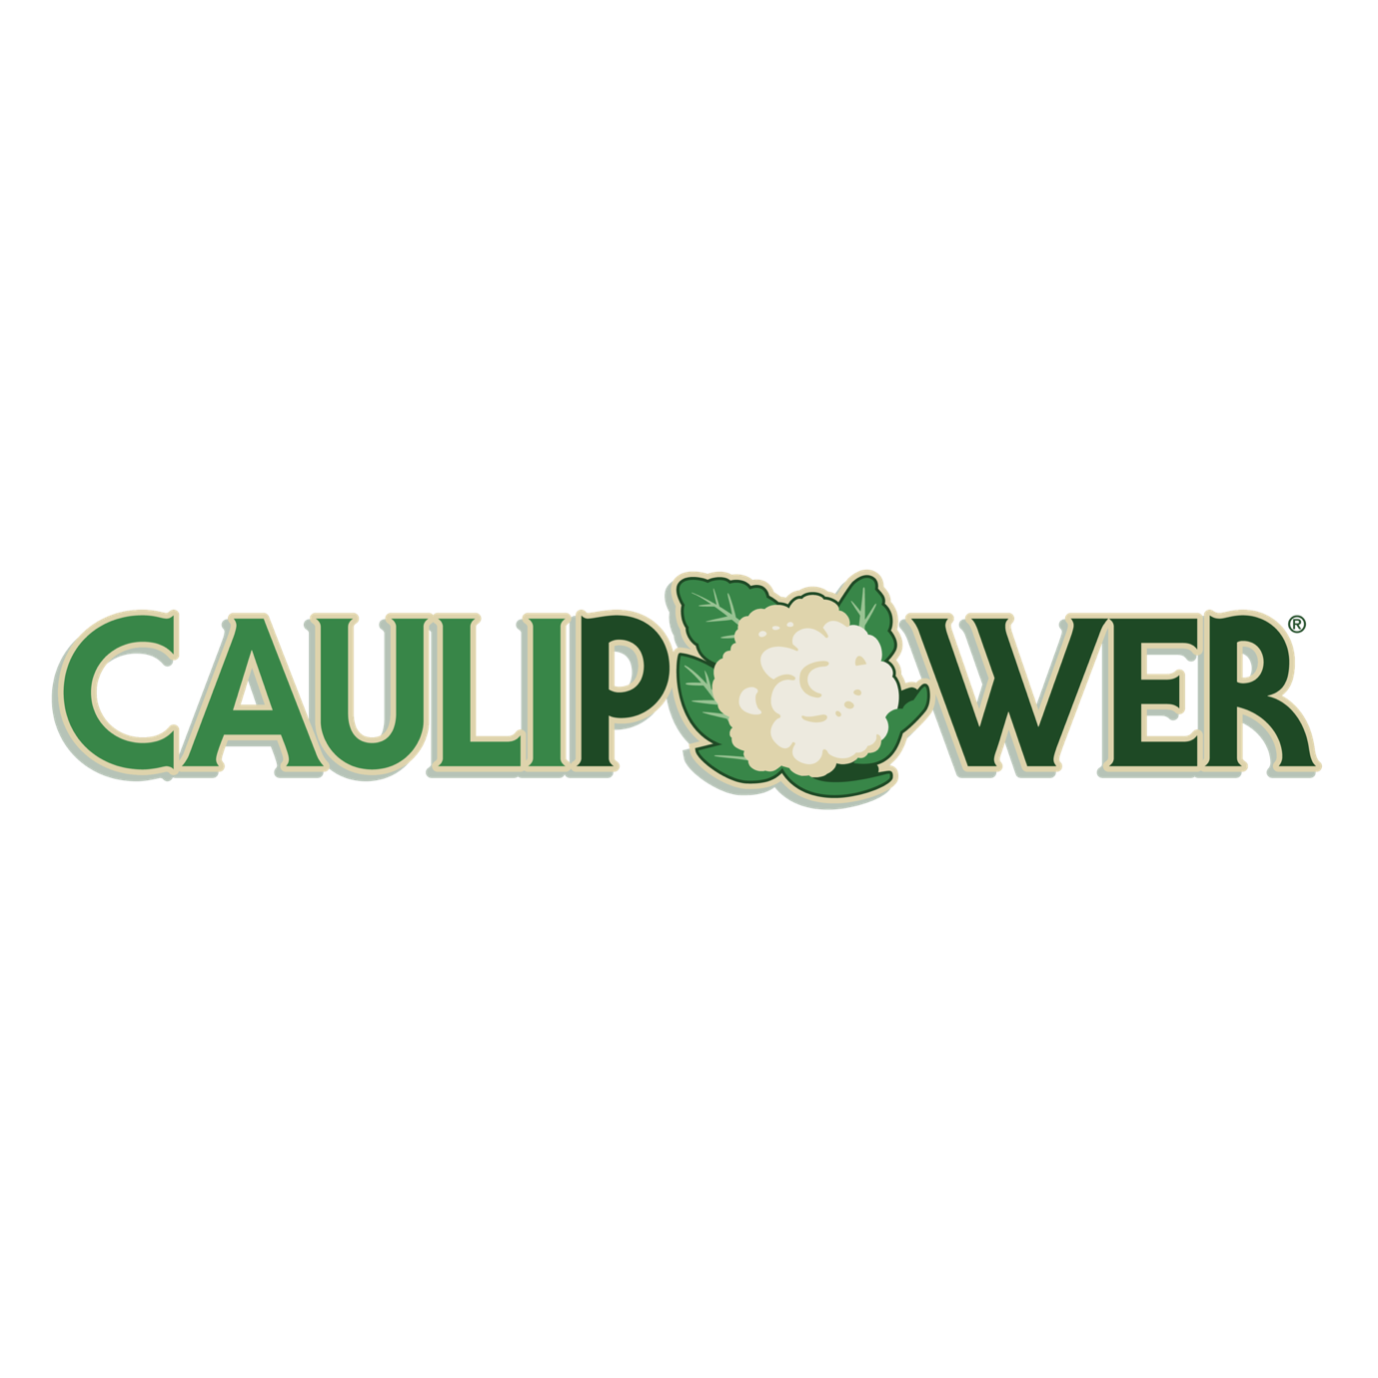 Caulipower logo - Keto Certified by the Paleo Foundation